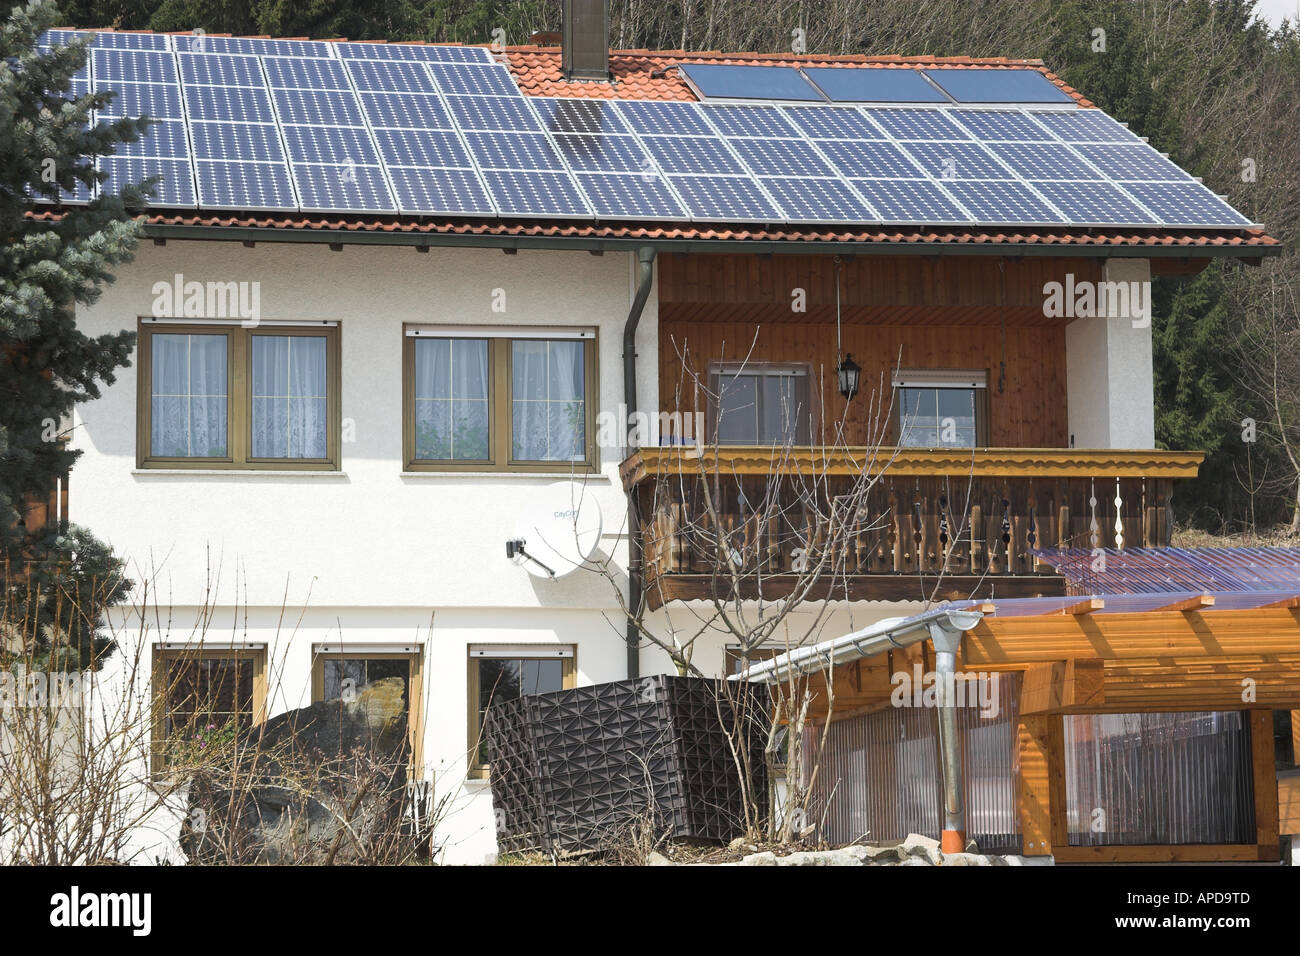 Private house roof in Southern Germany covered with PV (photovoltaic) cells for electricity generation Stock Photo